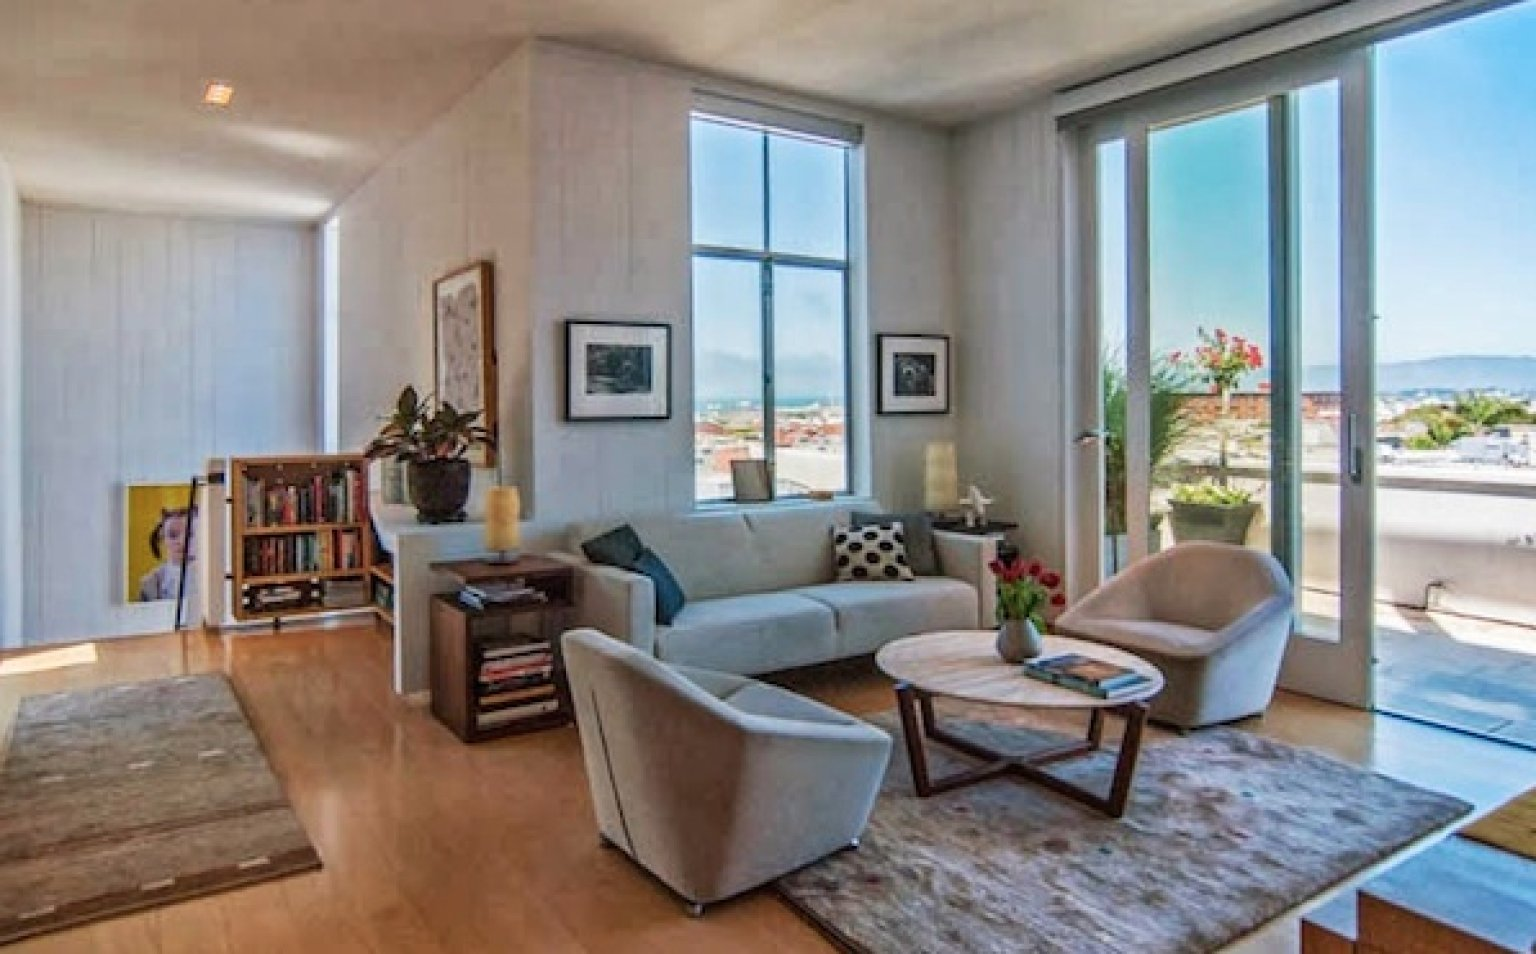 San Francisco Open House Great Bay Area Mid Century Modernism By